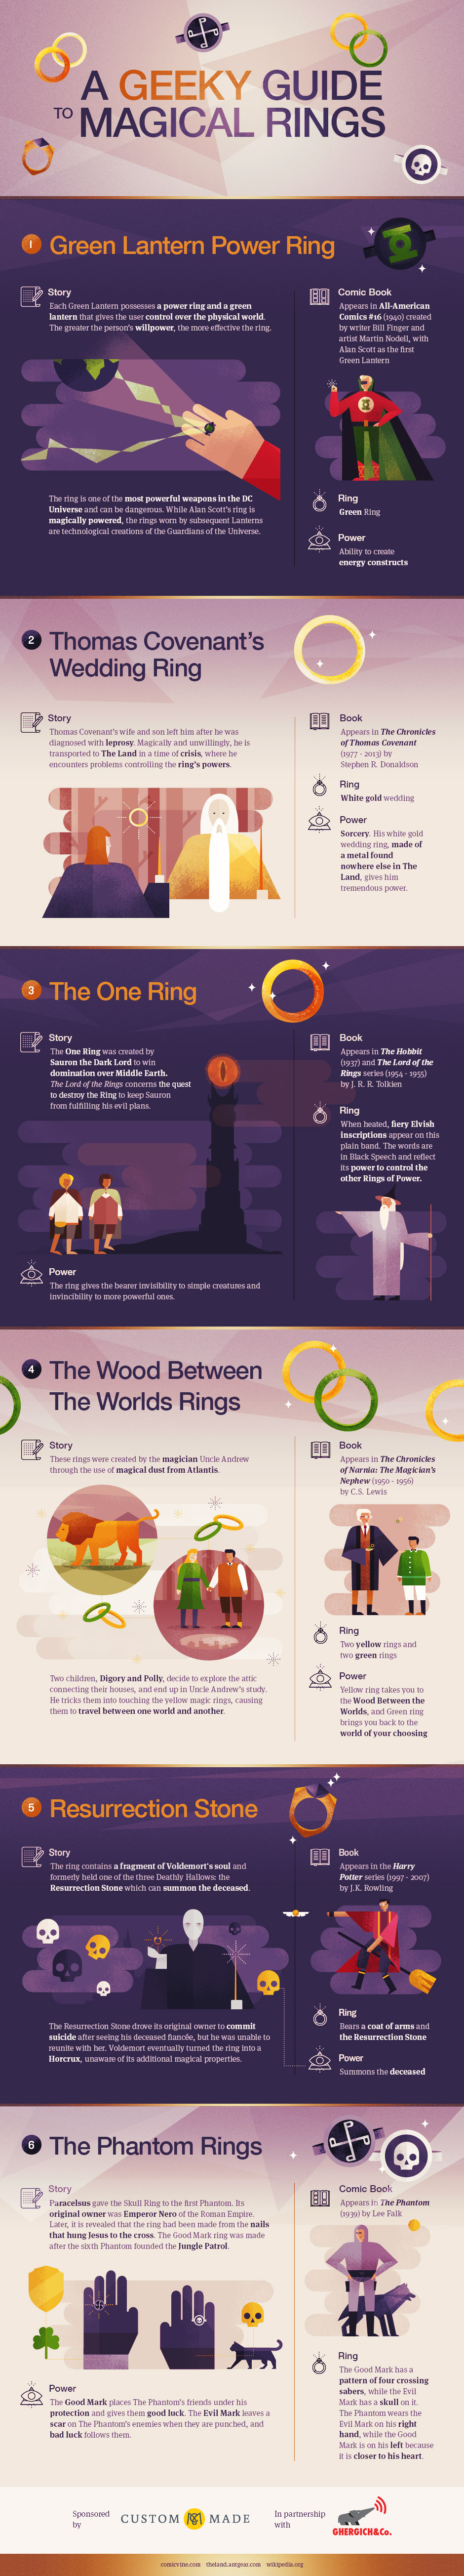 Geeky Guide to Magical Rings